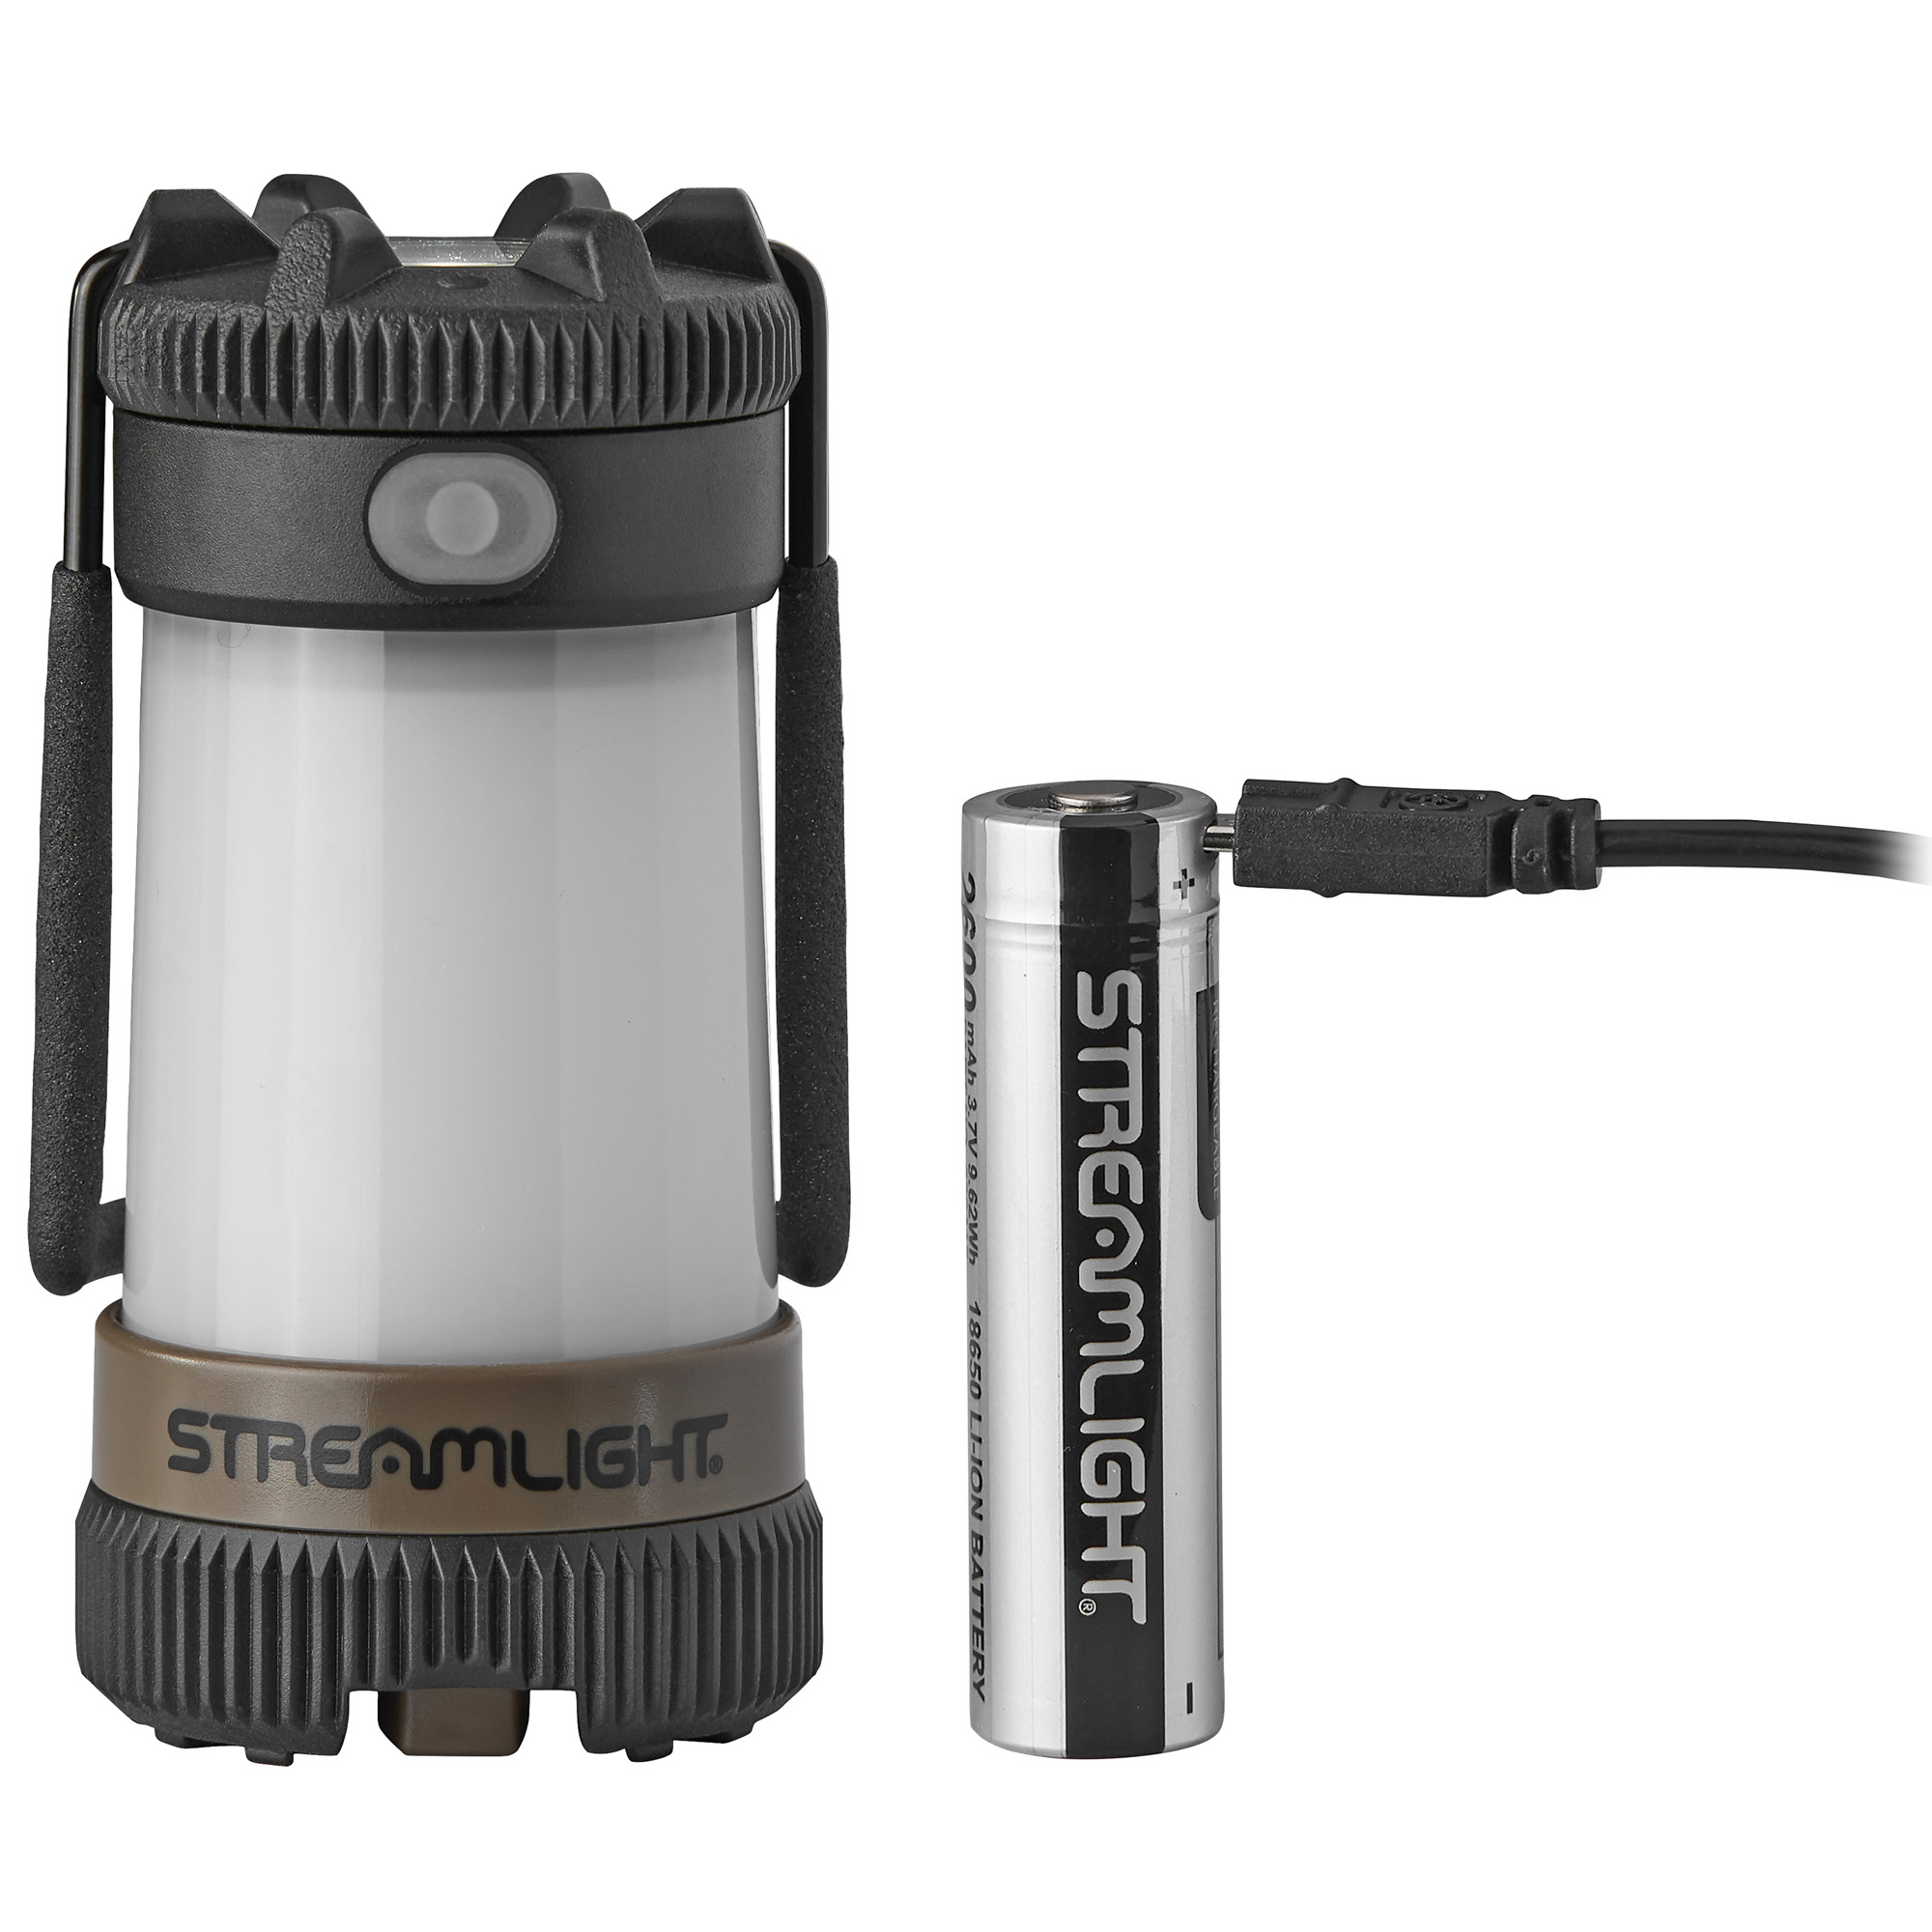 "The ultimate rechargeable lantern. This 2-in-1 lantern/flashlight combo provides 360 degree of light to illuminate a large area or a focused beam to light your path. Multiple modes plus SOS for emergency signaling. MULTI-FUEL innovation - uses Streamlight's 18650 USB battery; also accepts CR123A lithium batteries"" ensuring you'll always have a beam when you need it."